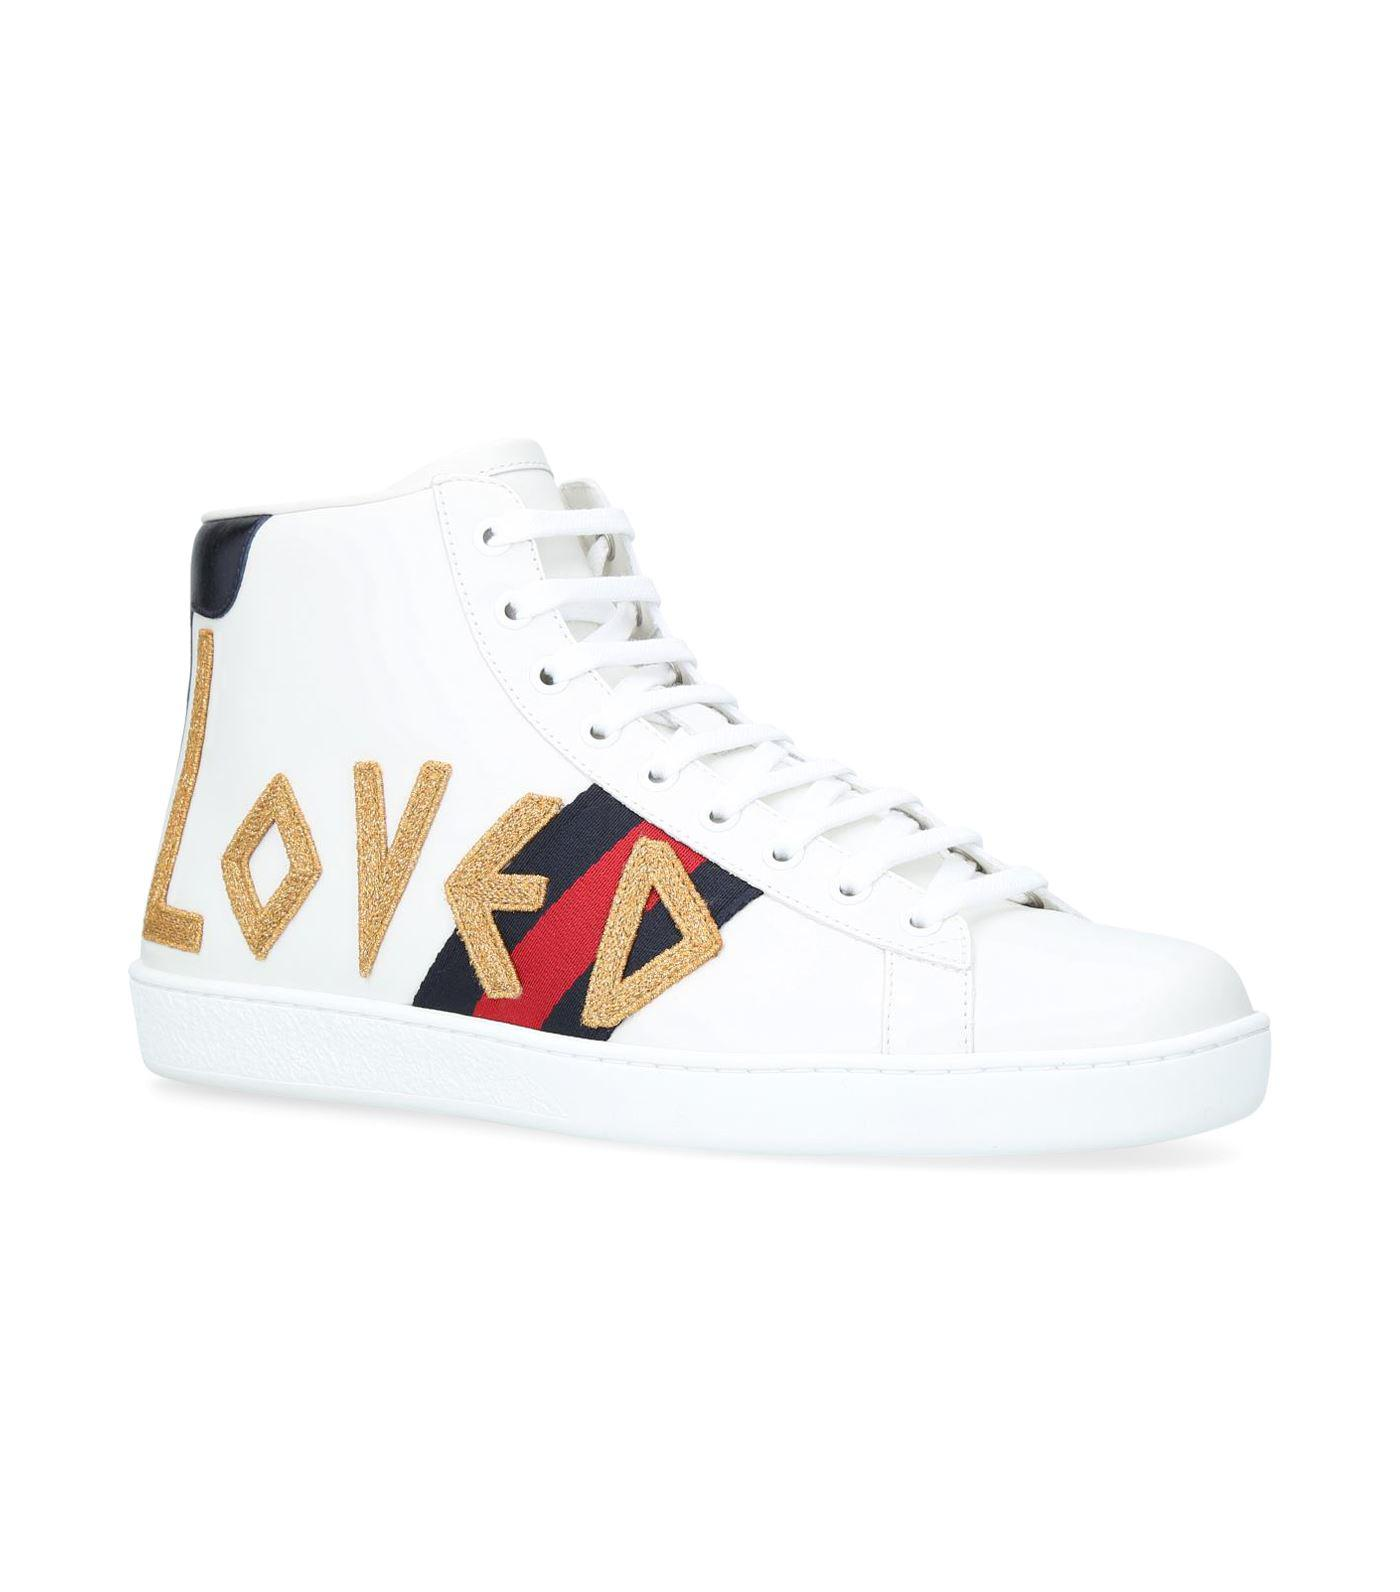 101203f88e3d3 Lyst - Gucci Loved New Ace High-top Sneakers in White for Men